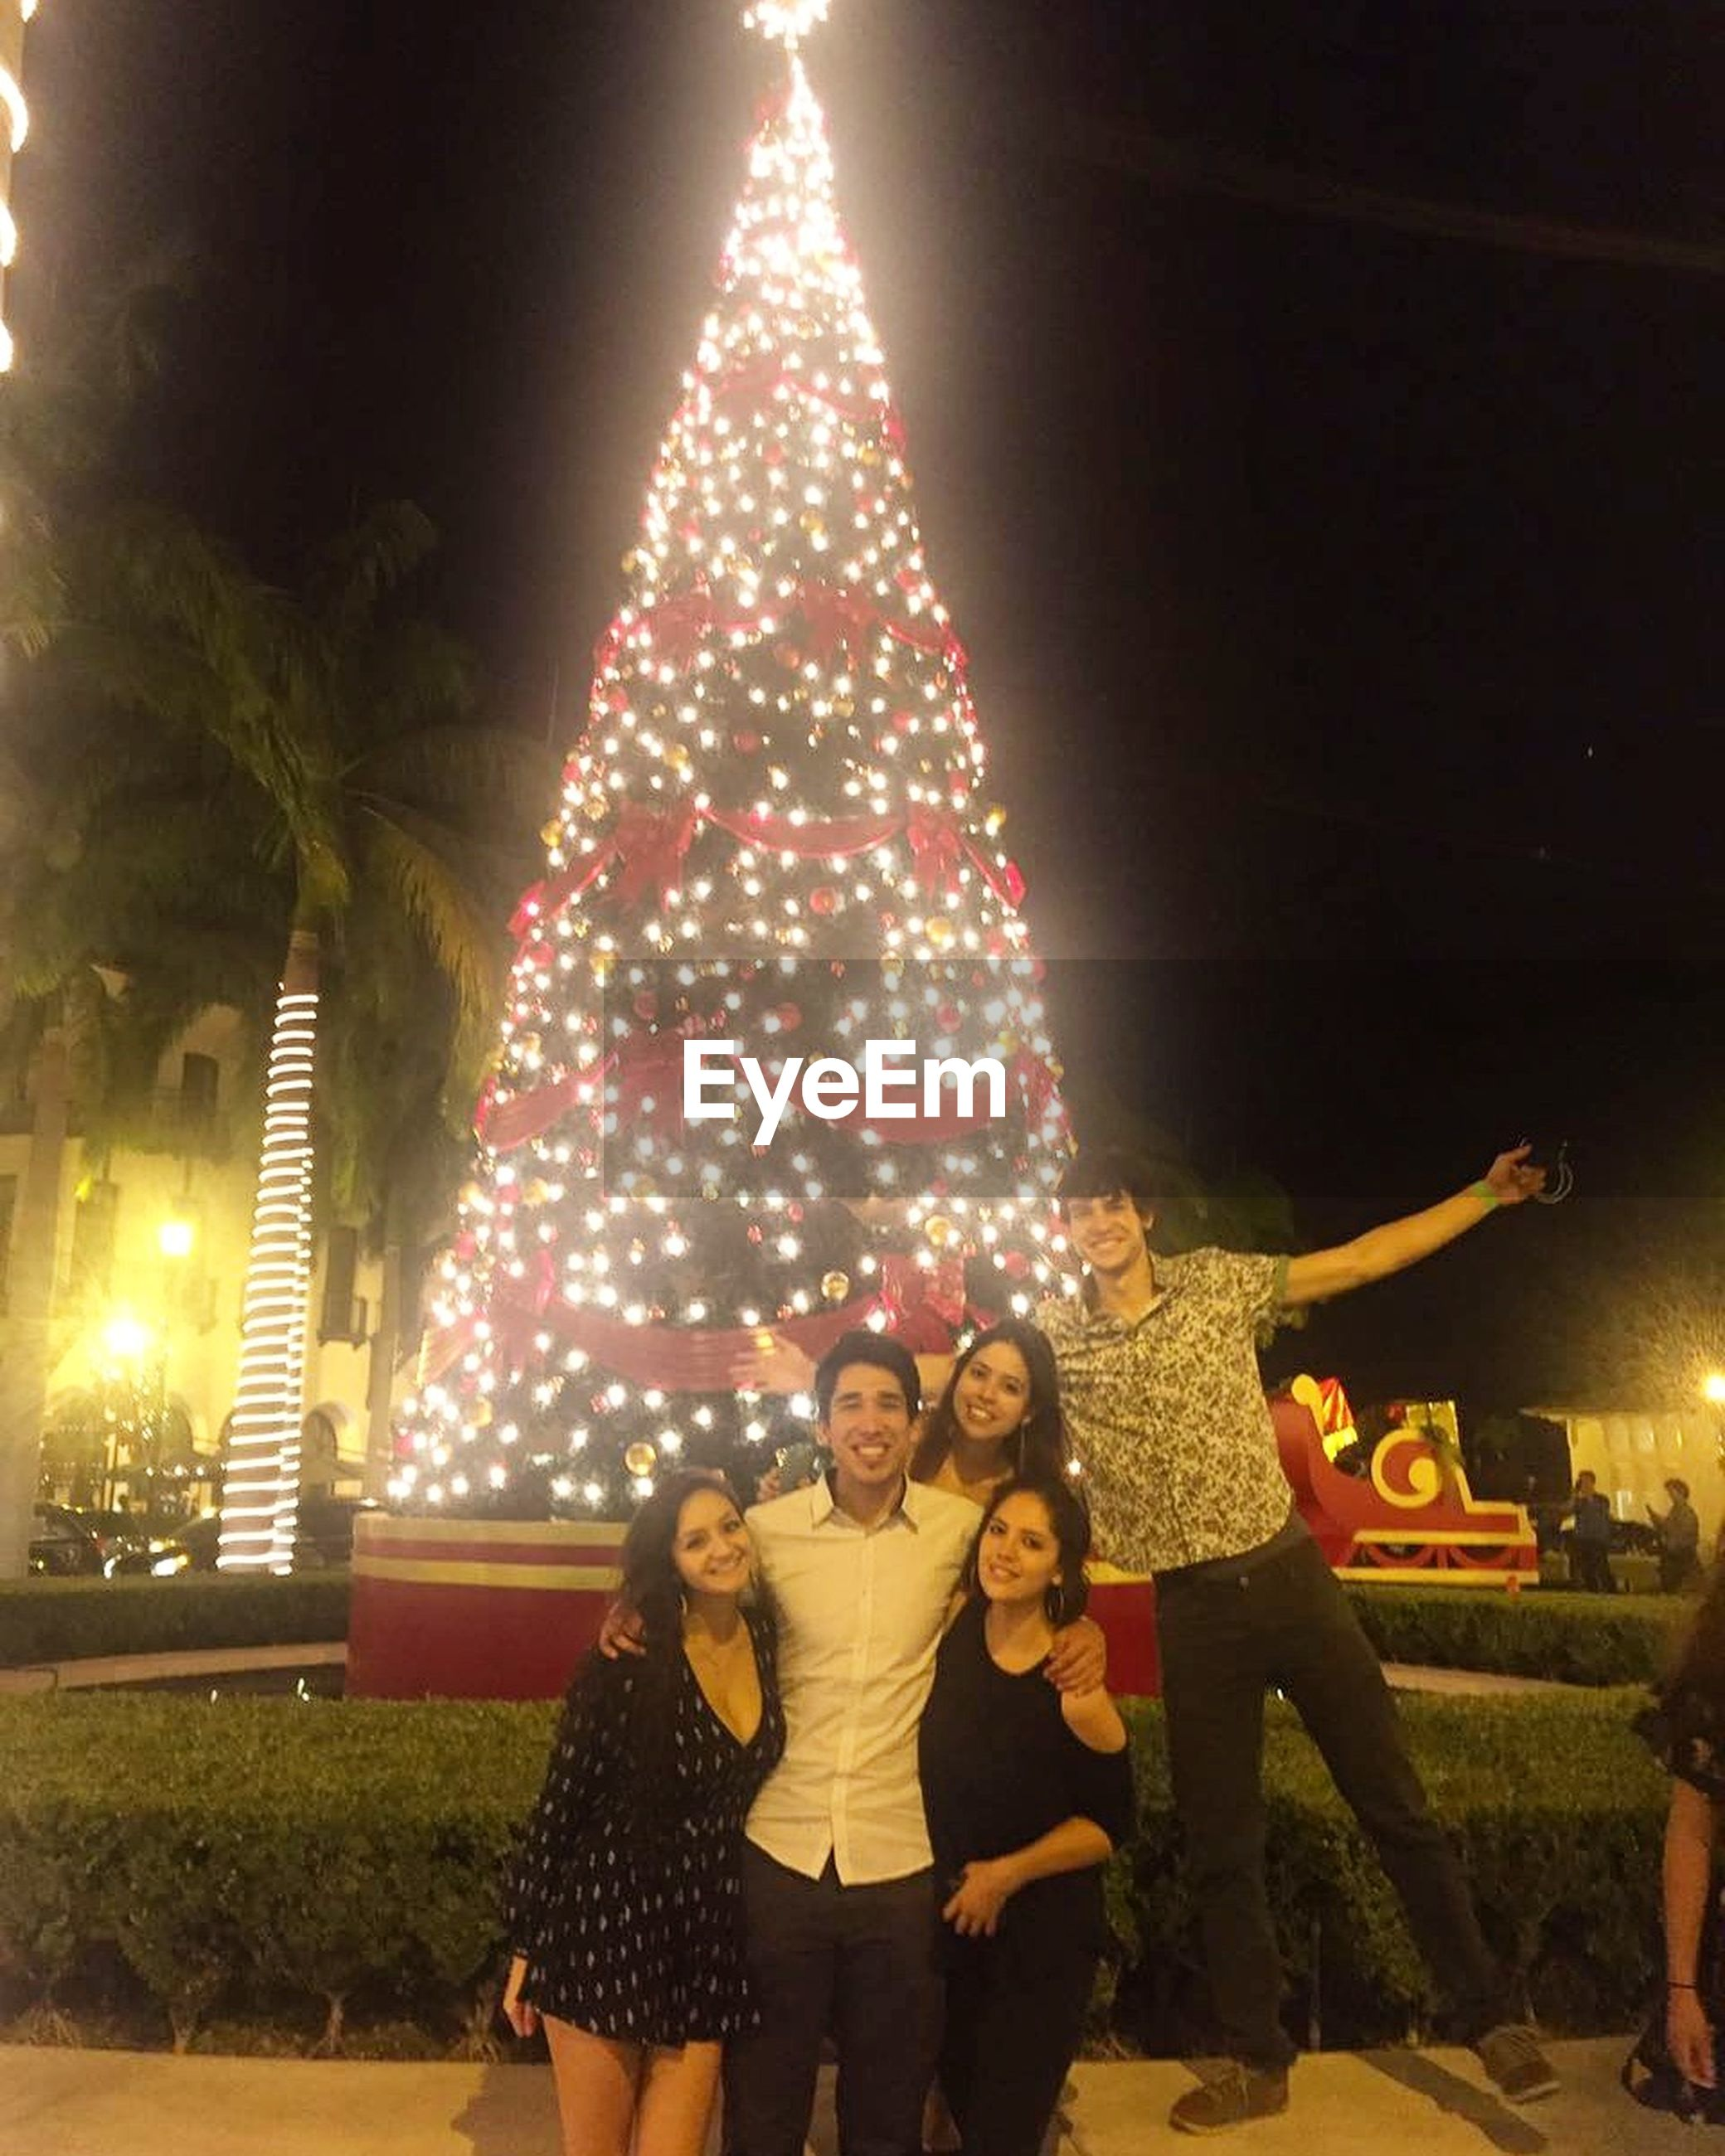 illuminated, celebration, night, christmas, real people, christmas tree, togetherness, christmas decoration, enjoyment, leisure activity, christmas lights, happiness, outdoors, lifestyles, standing, vacations, tree, friendship, young women, young adult, architecture